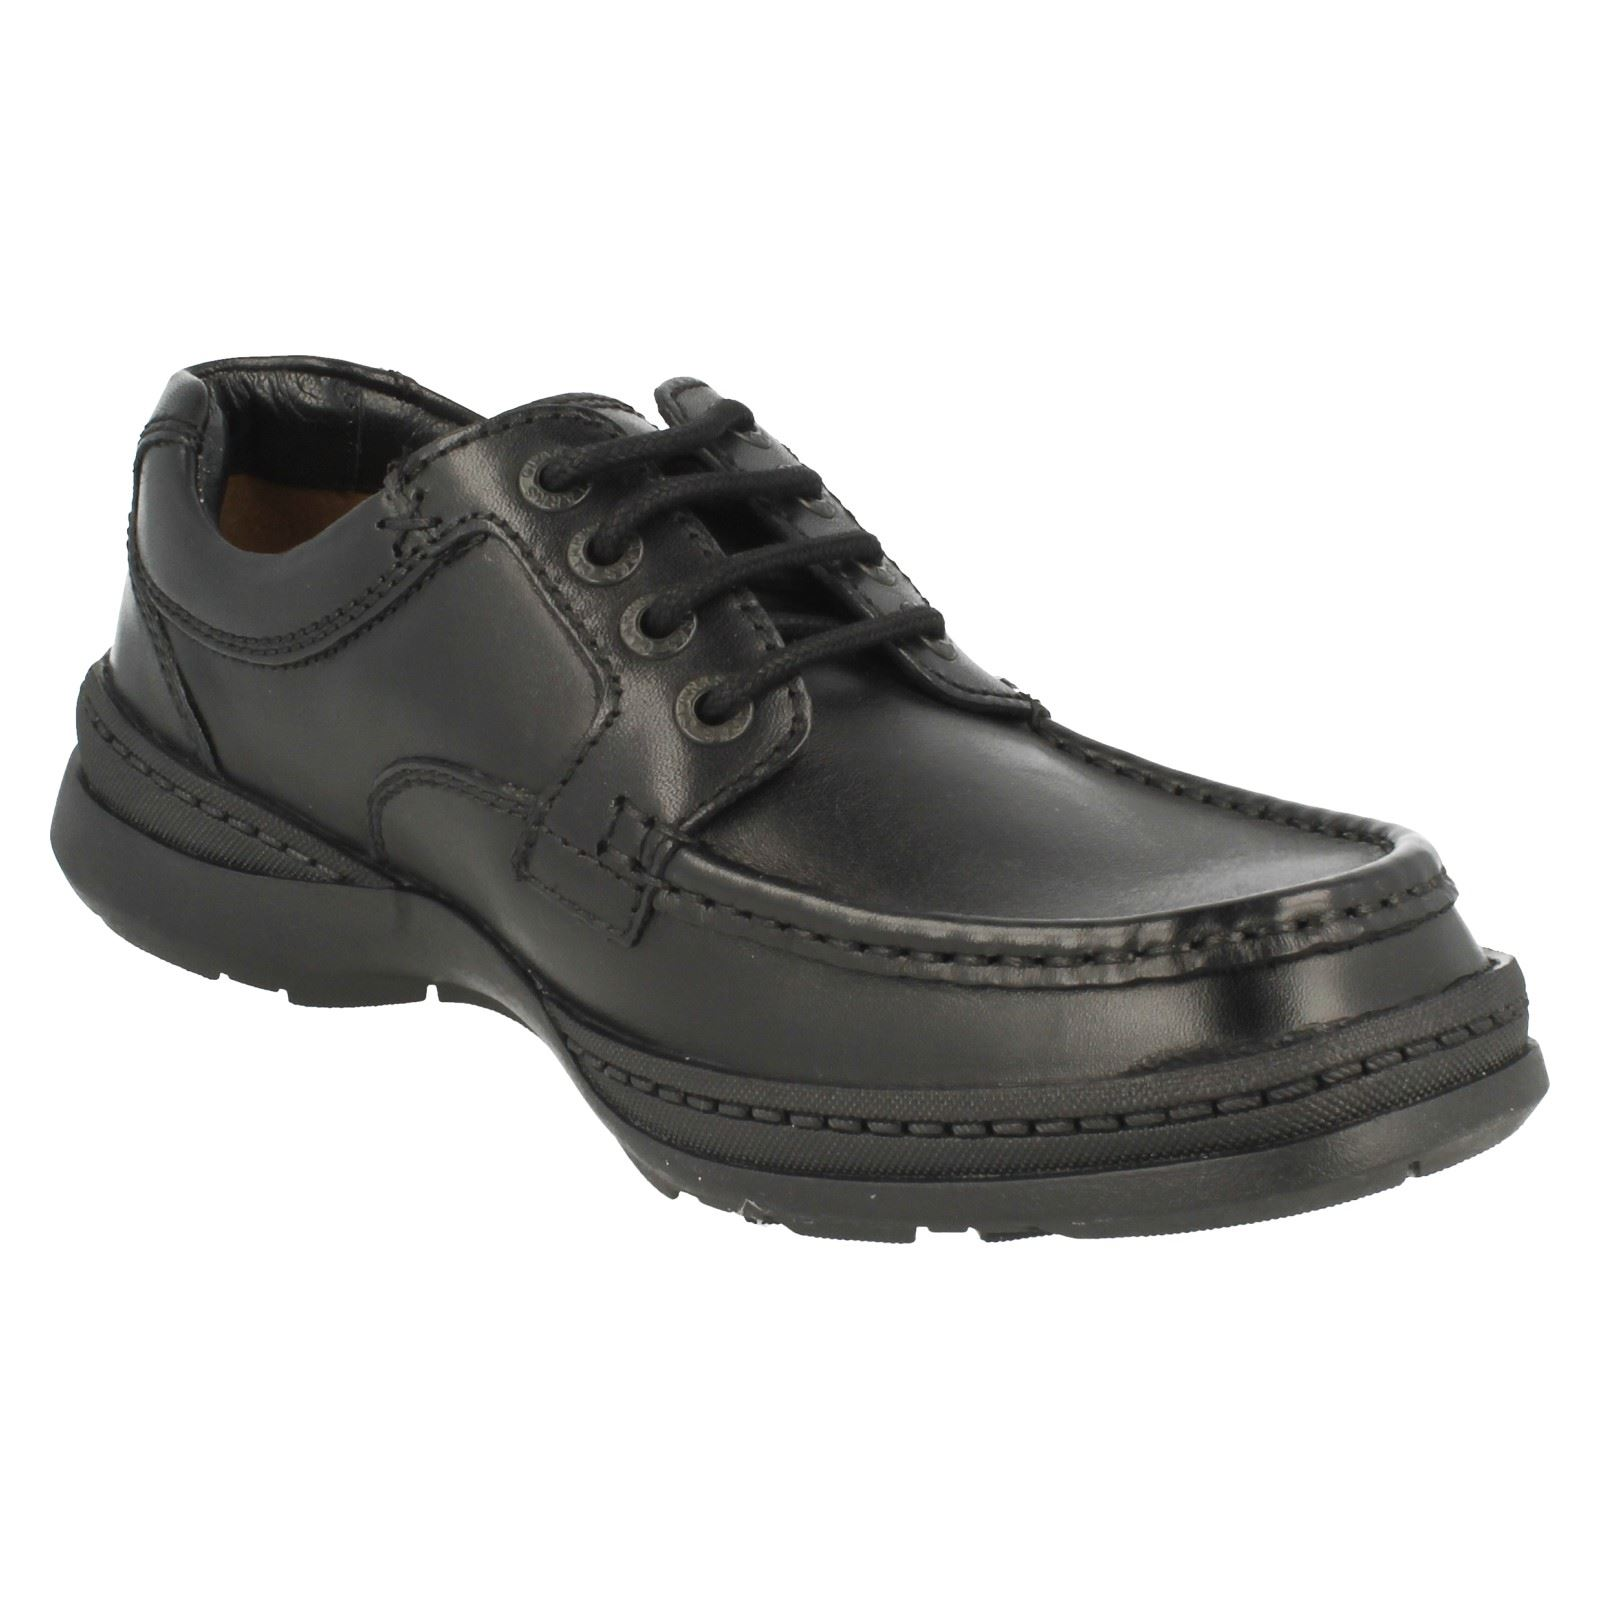 These hardwearing everyday men's shoes are designed in rich walnut leather and fasten with a classic lace-up. They feature Cushion Cell technology for added comfort, creating an .